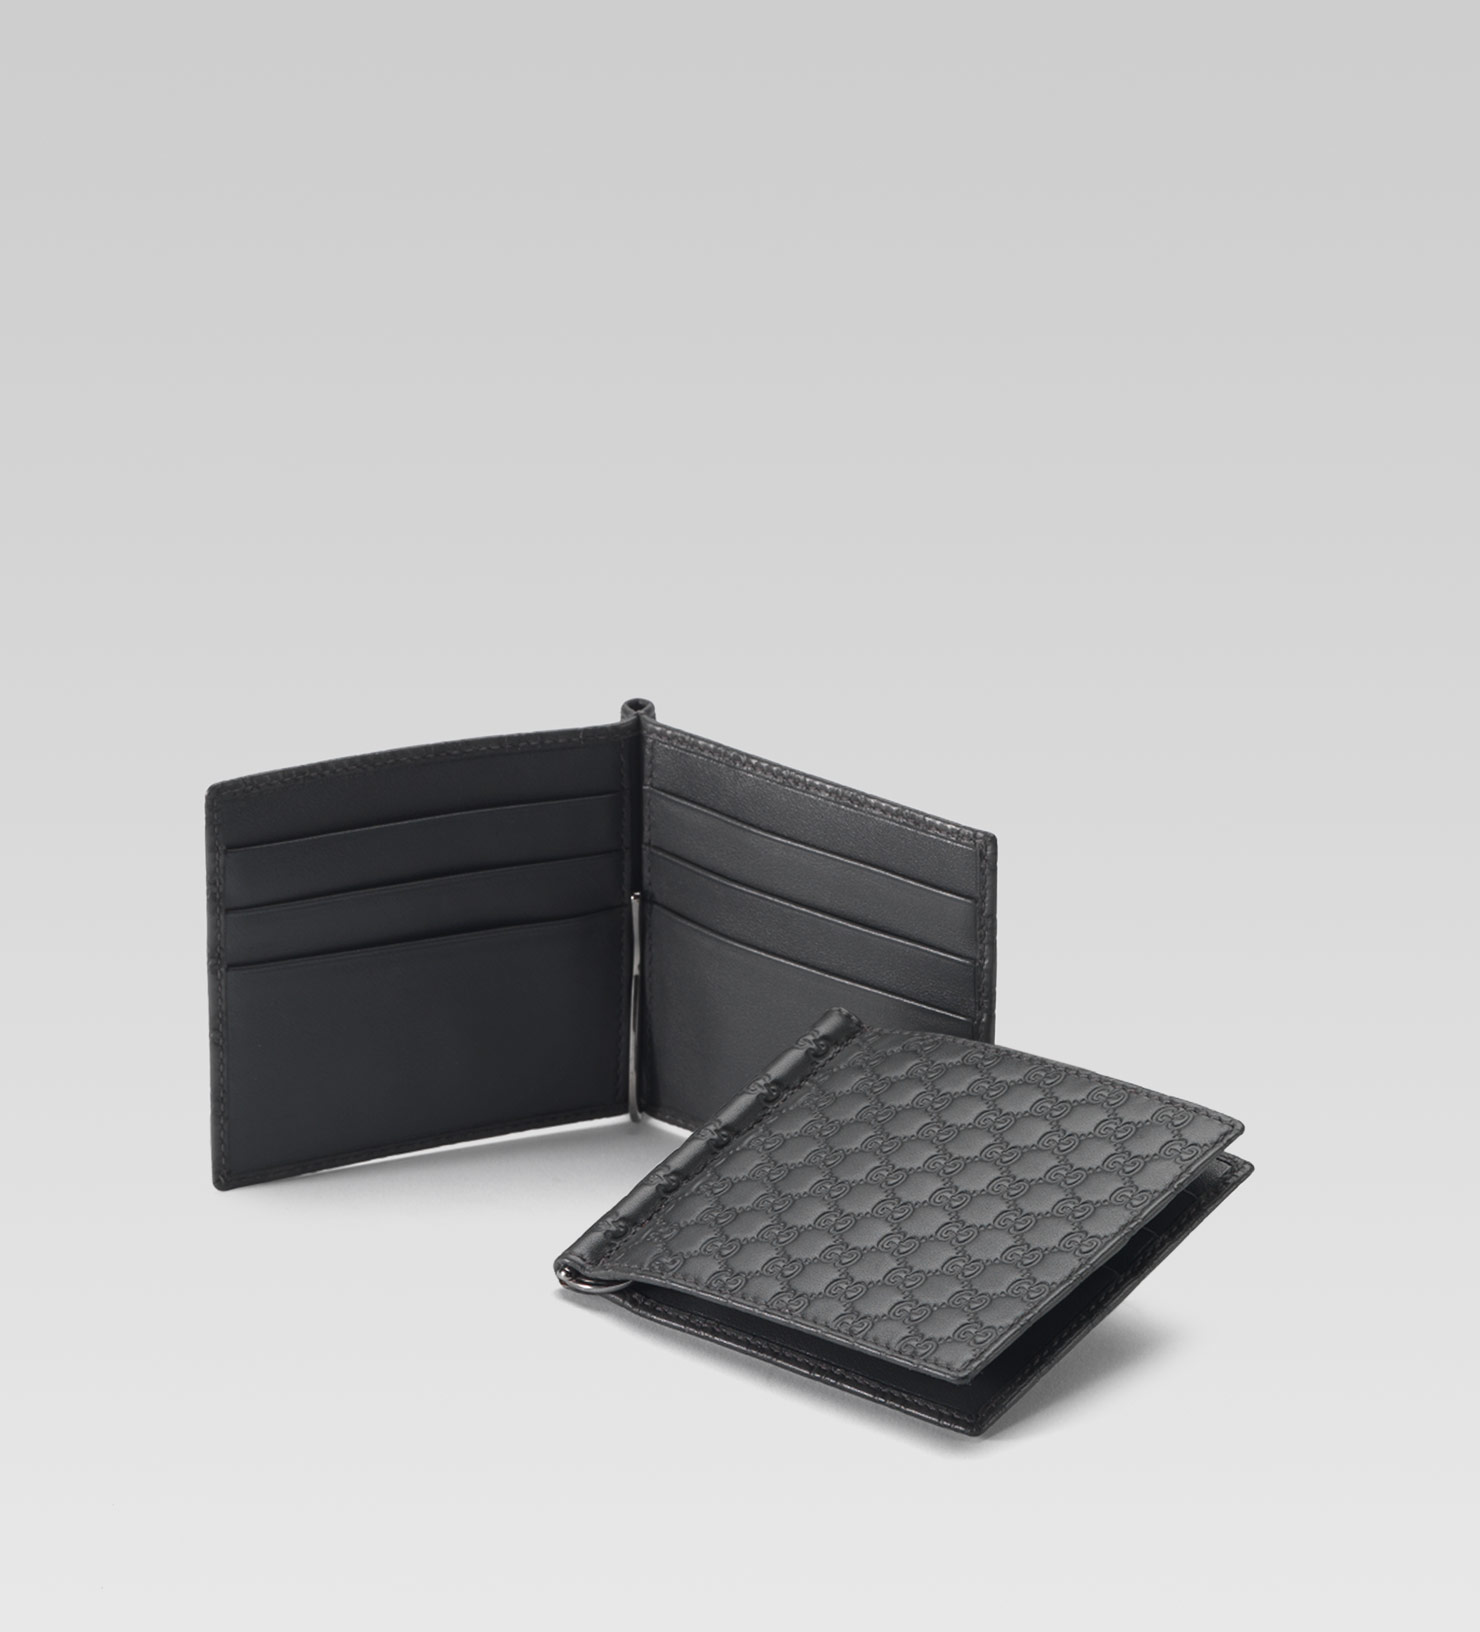 2a3c0b0b21fffd Gucci Bifold Wallet With Money Clip - Image Of Wallet